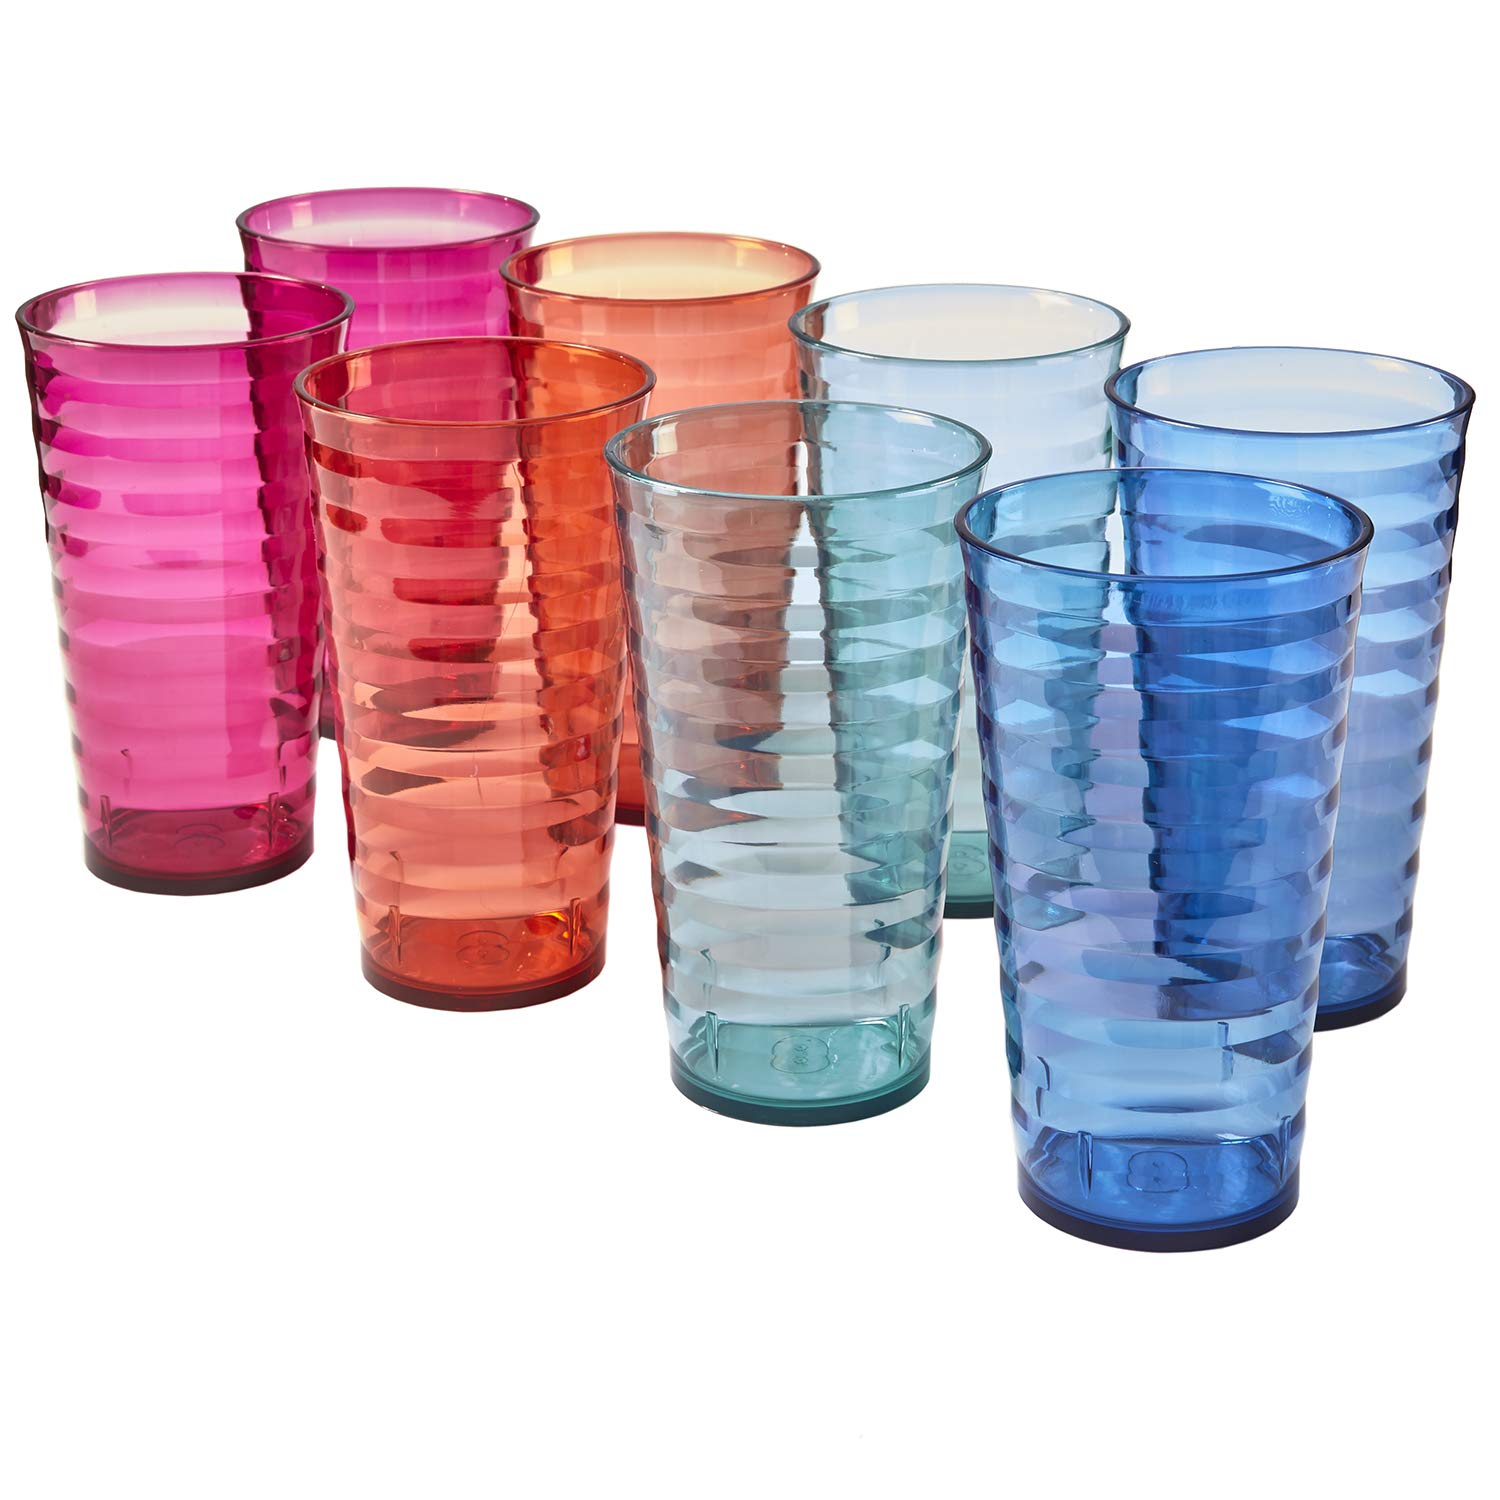 Splash 18-ounce Plastic Tumblers | set of 8 in 4 Assorted Colors